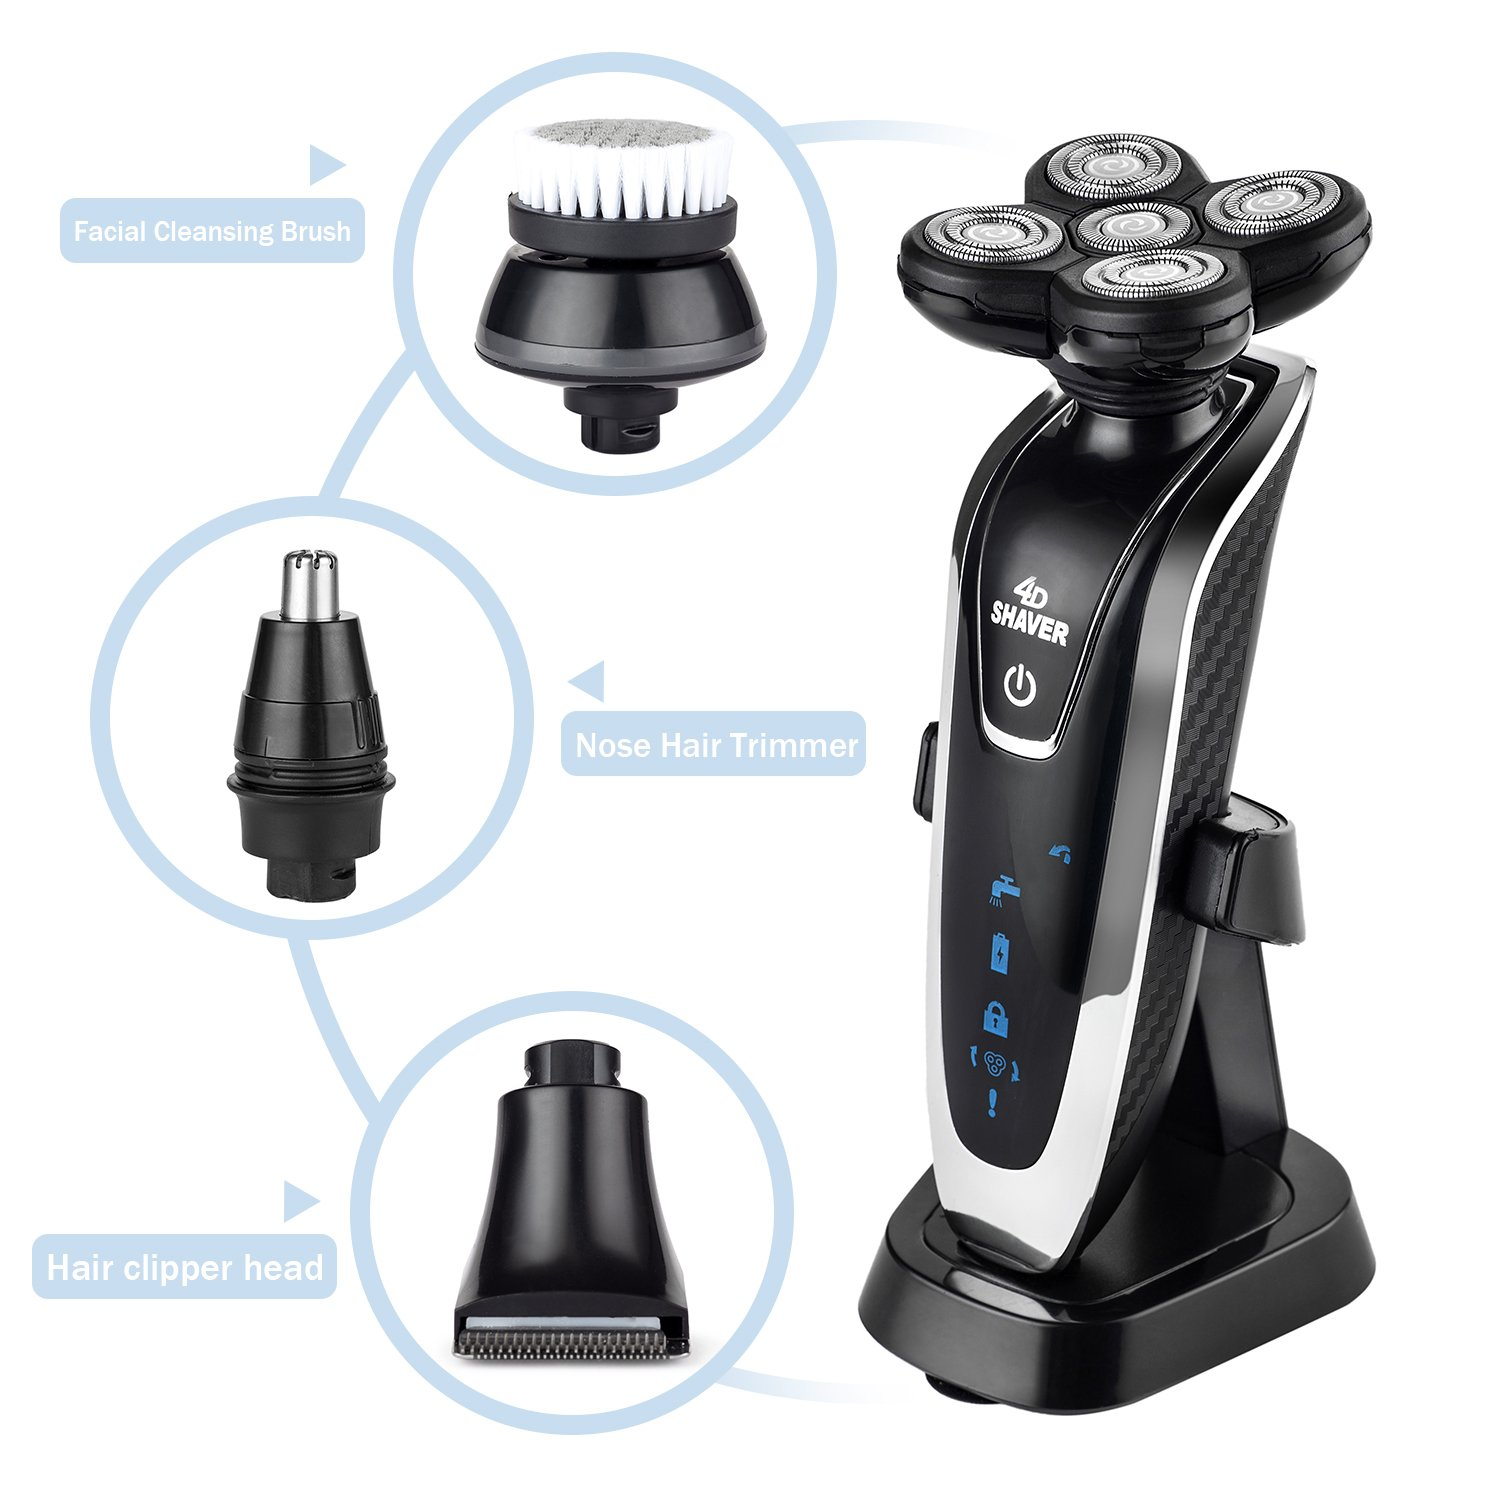 Electric Rotary Shavers 4 in 1, 4D Cordless USB Rechargeable IPX7 Waterproof Men's Shaver with 5 Head Razor, Hair Clippers Nose Hair Trimmer and Facial Cleansing Brush, Wet & Dry Wet and Dry with Charging Stand iBeauTek